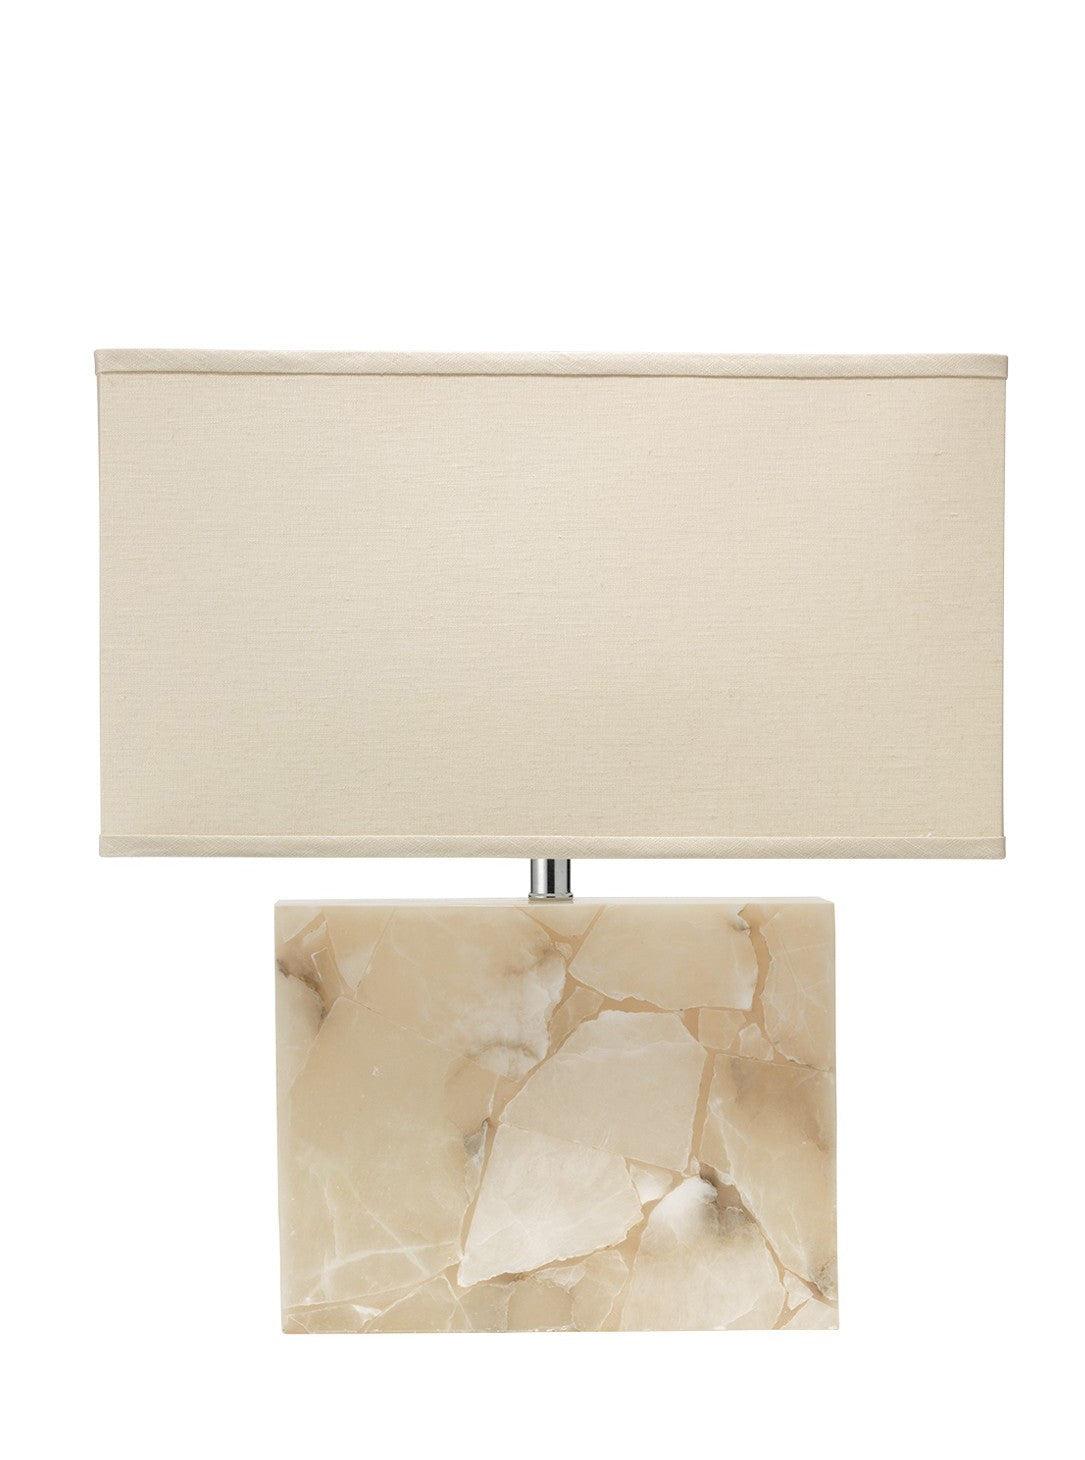 Borealis table lamp jamie young luxe home philadelphia borealis table lamp jamie young geotapseo Gallery